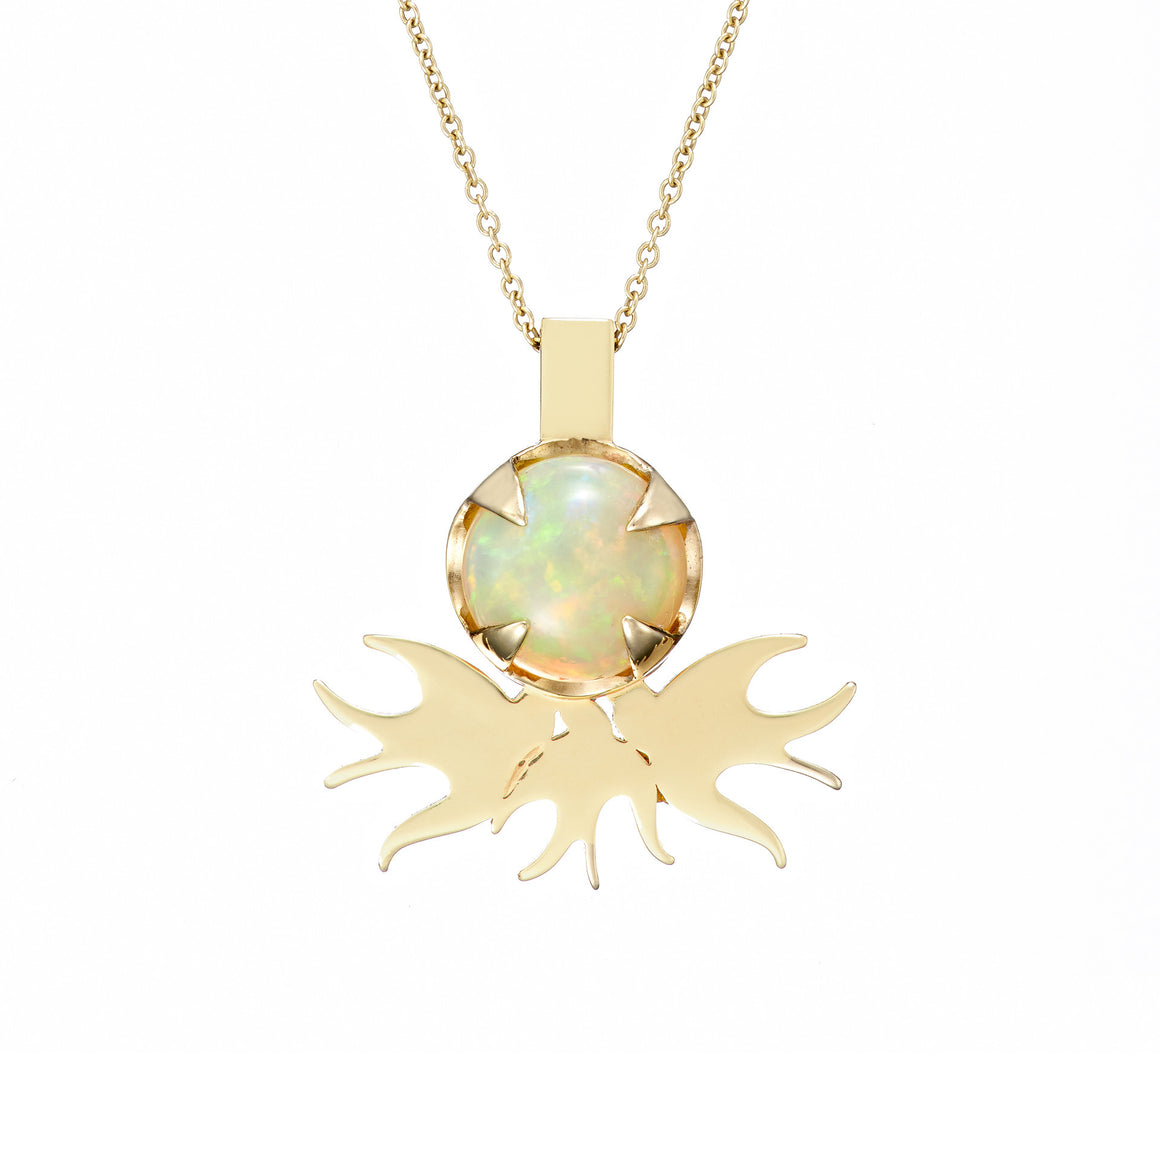 irish jewellery designer ella green jewellery irish designer opal bird pendant necklace yellow gold gemstone